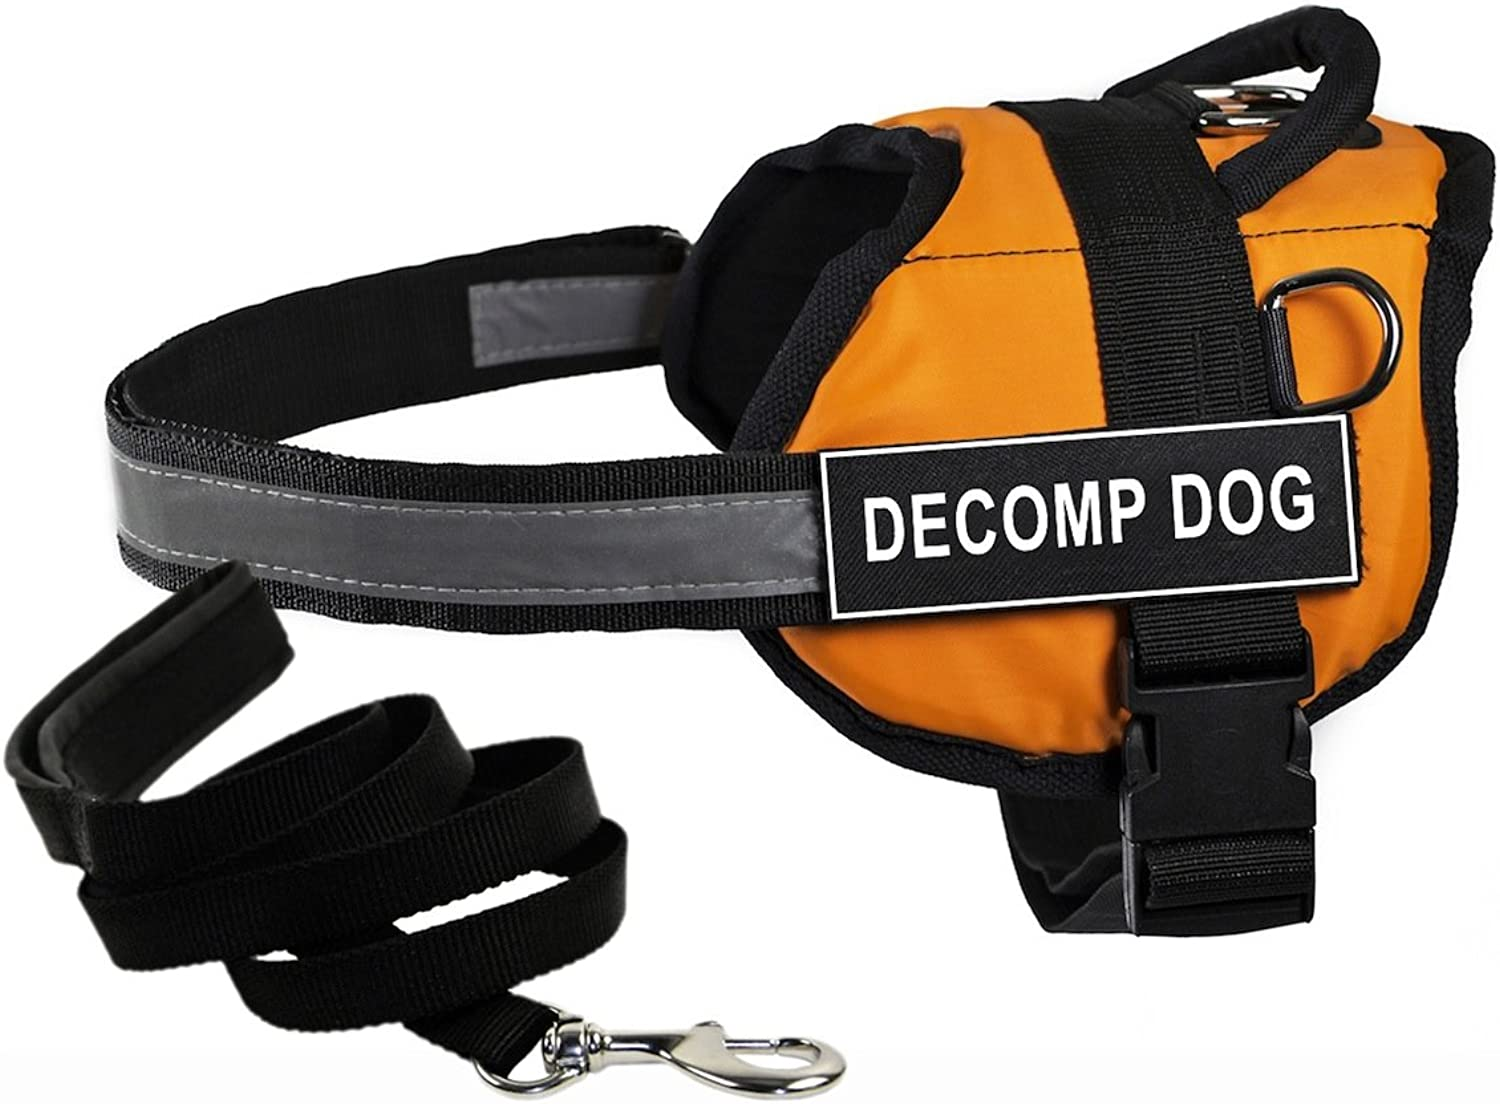 Dean & Tyler's DT Works orange DECOMP DOG Harness with, XSmall, and Black 6 ft Padded Puppy Leash.